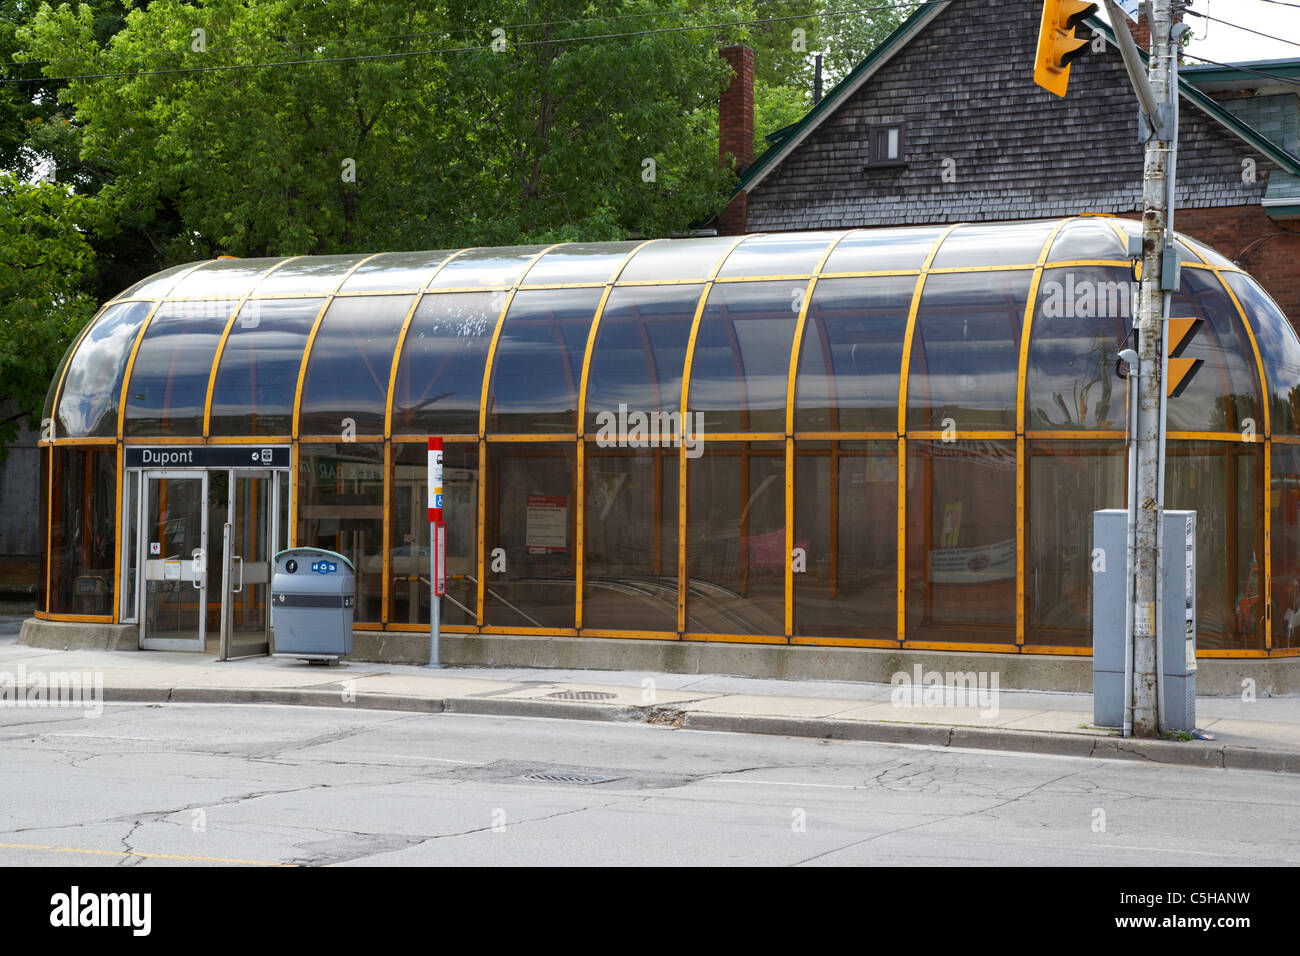 dupont ttc covered subway station entrance toronto ontario canada - Stock Image